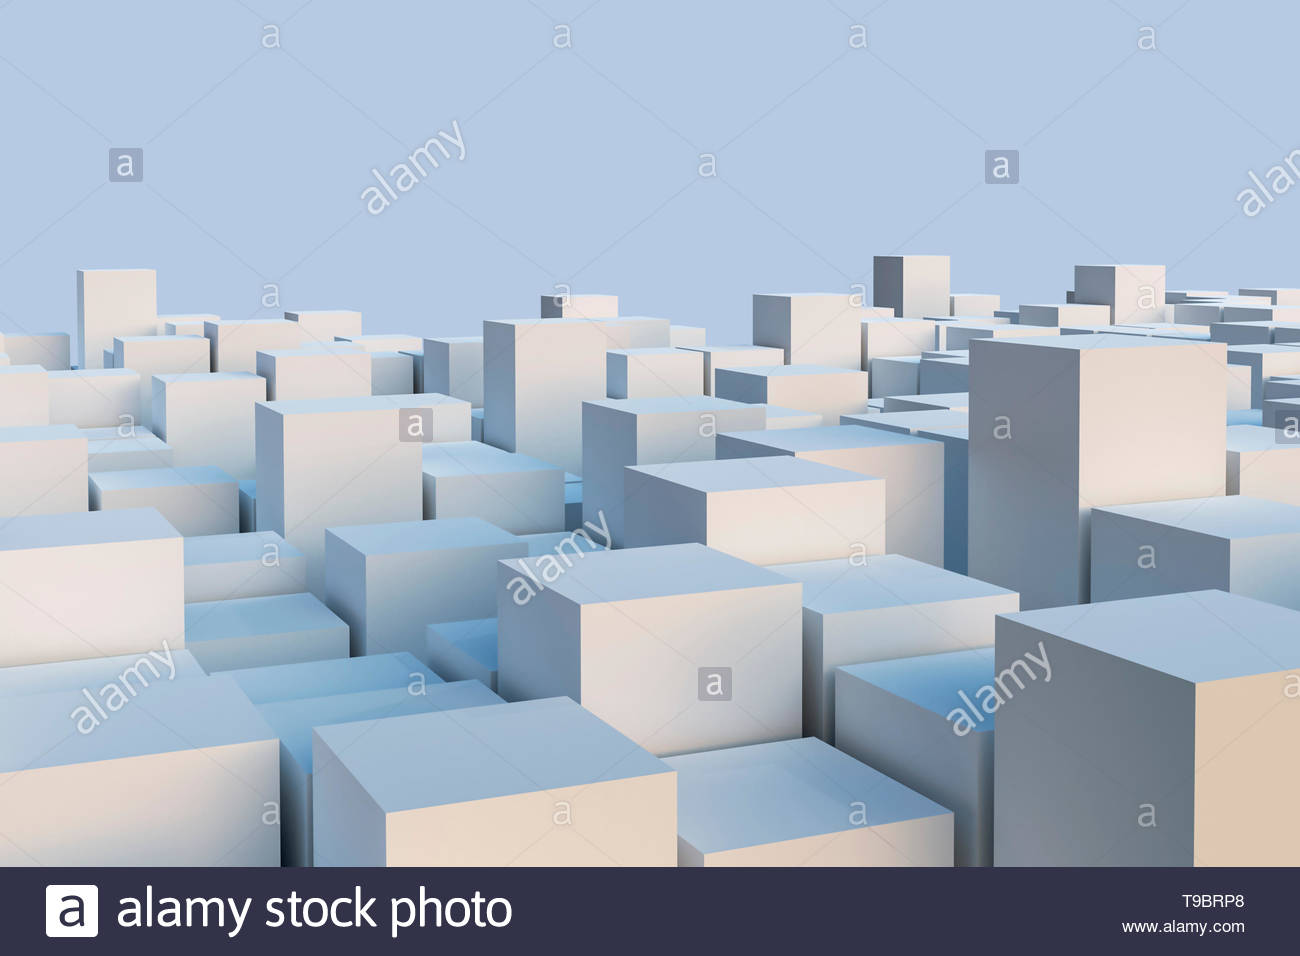 Abstract white cuboids or cubes illustration Geometry or 1300x956